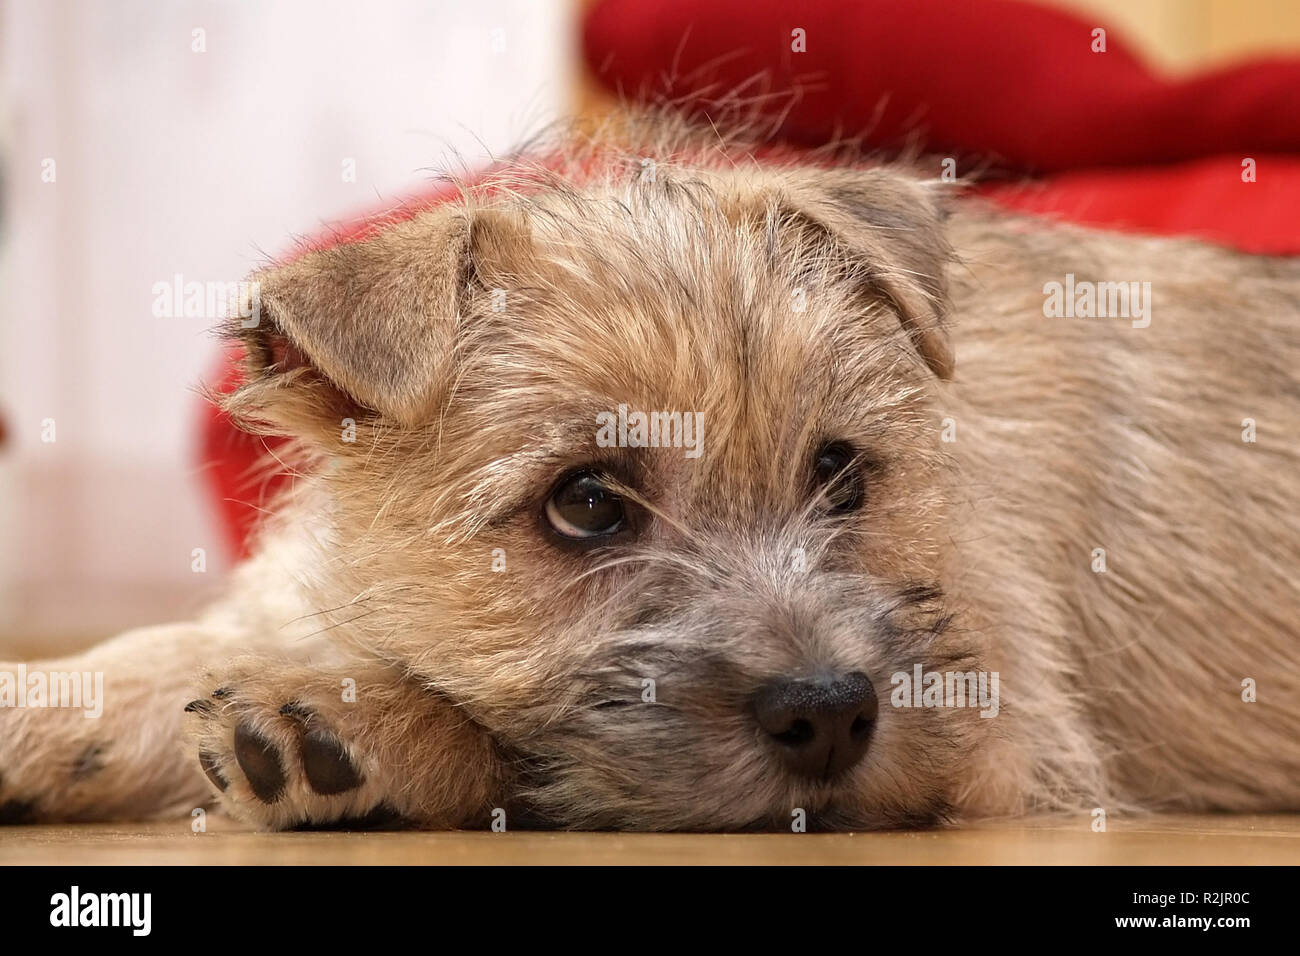 our new cairn terrier baby - Stock Image